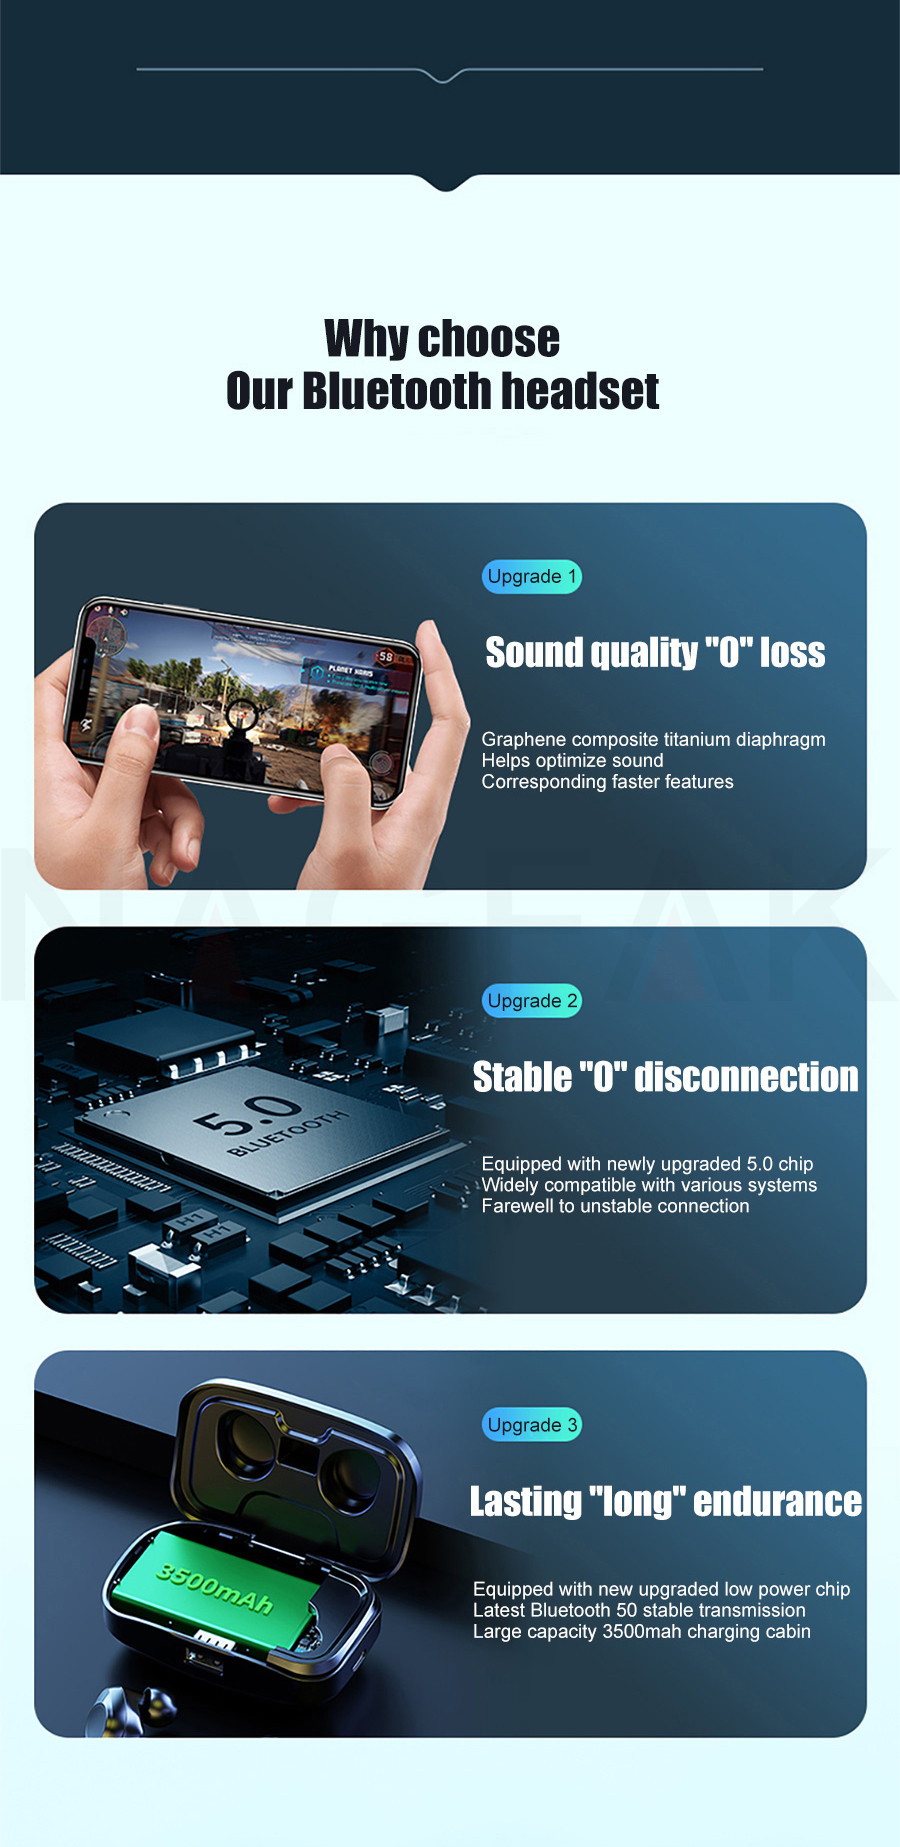 TWS Bluetooth 5.0 Earphones 3500mAh Charging Box Wireless Headphone 9D Stereo Sports Waterproof Earbuds Headsets With Microphone